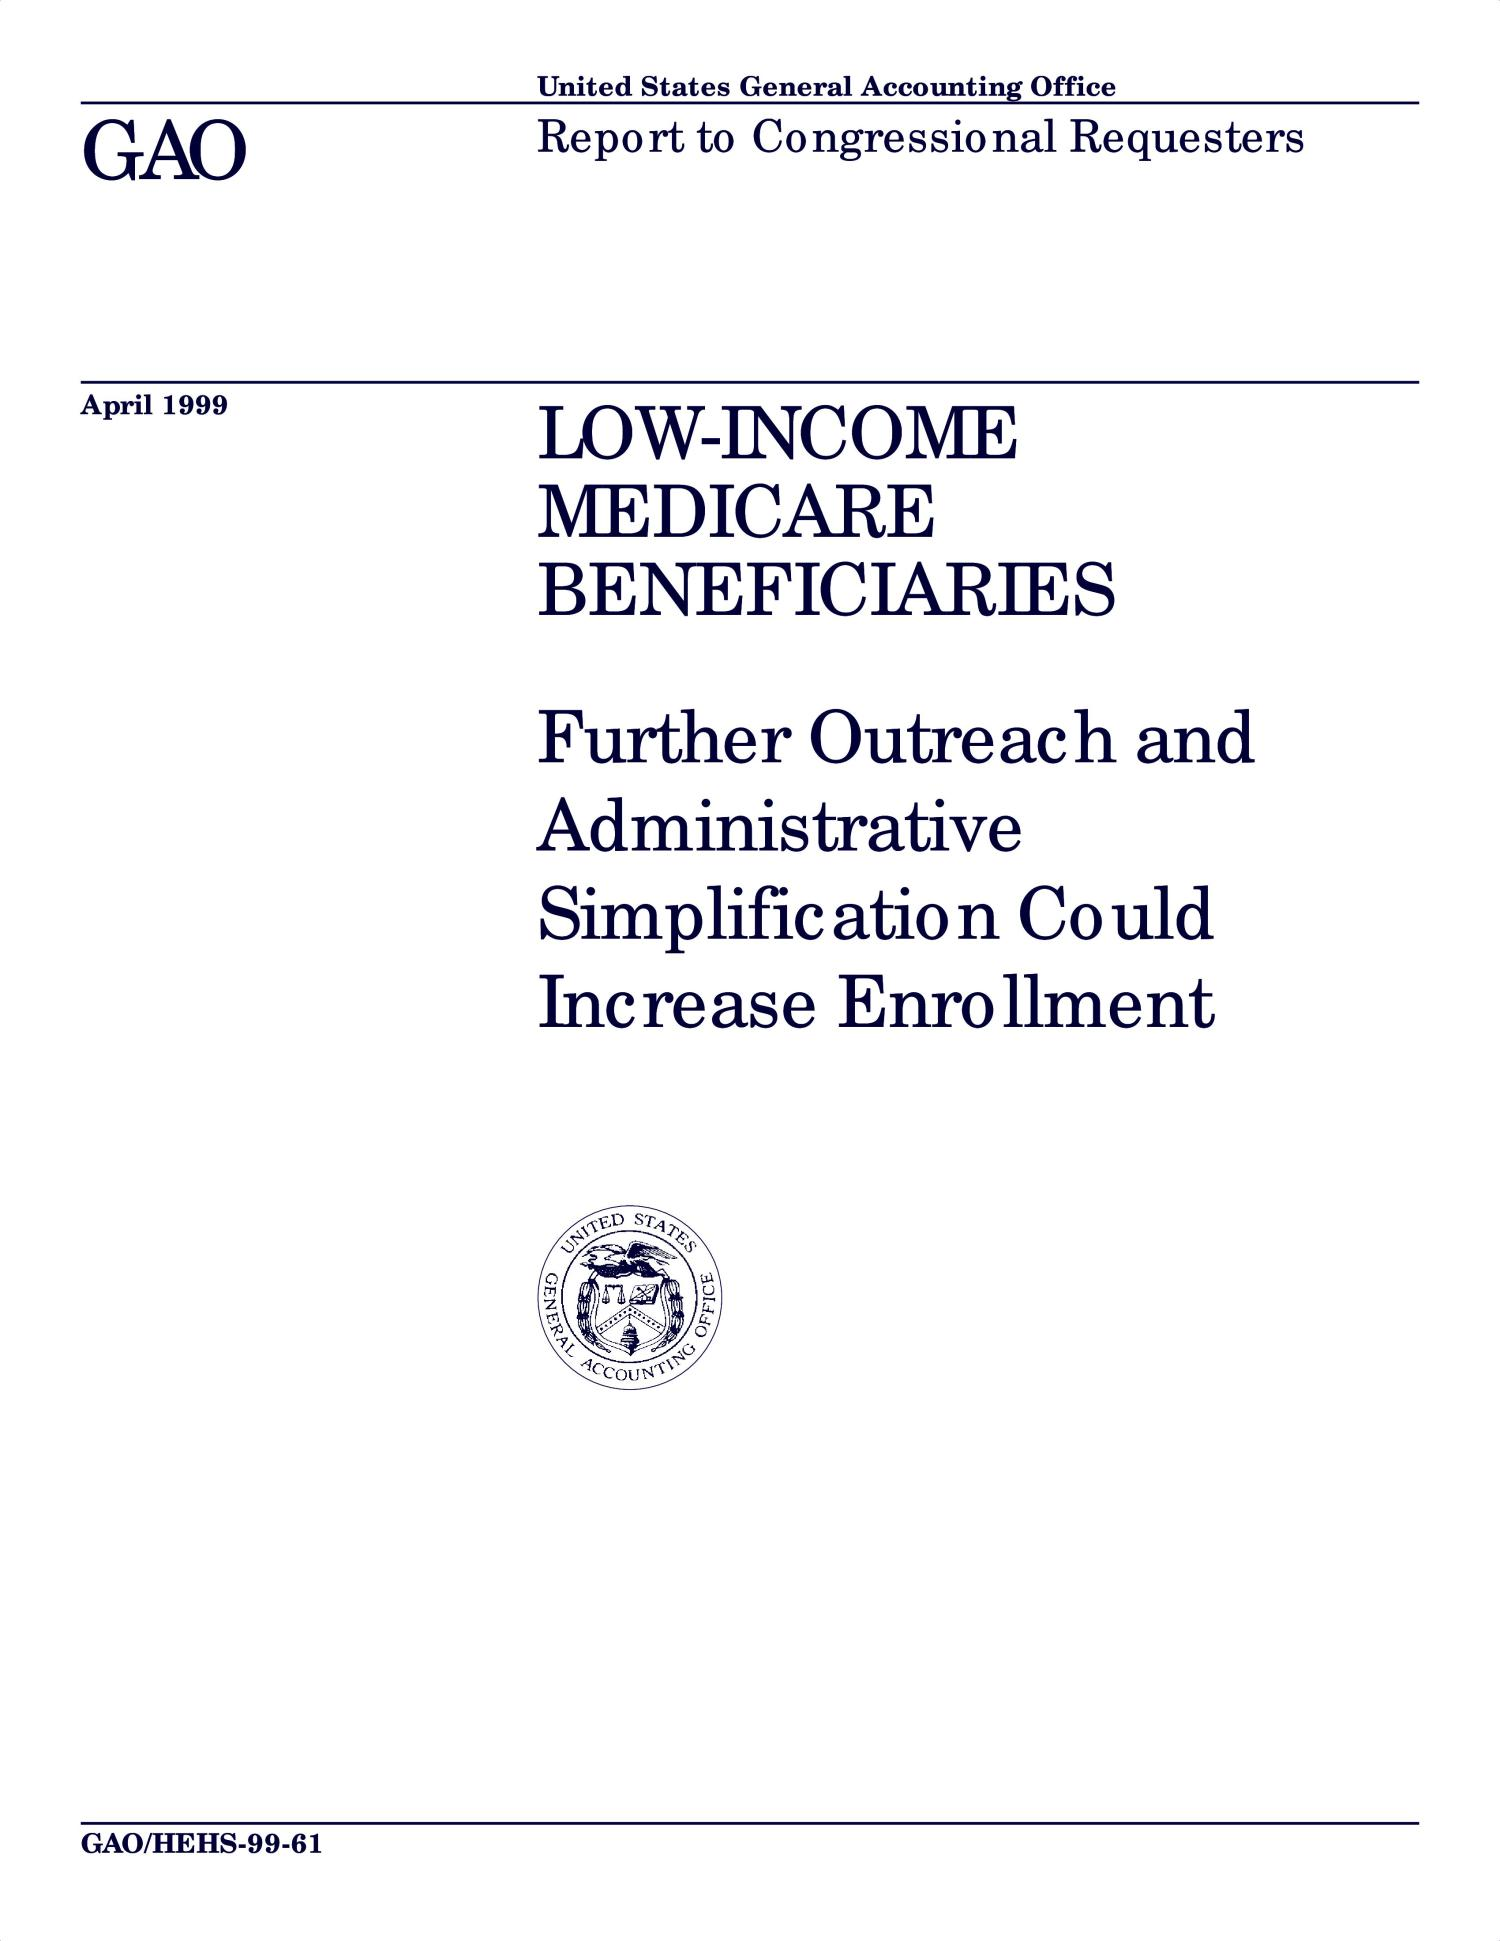 Low-Income Medicare Beneficiaries: Further Outreach and ...